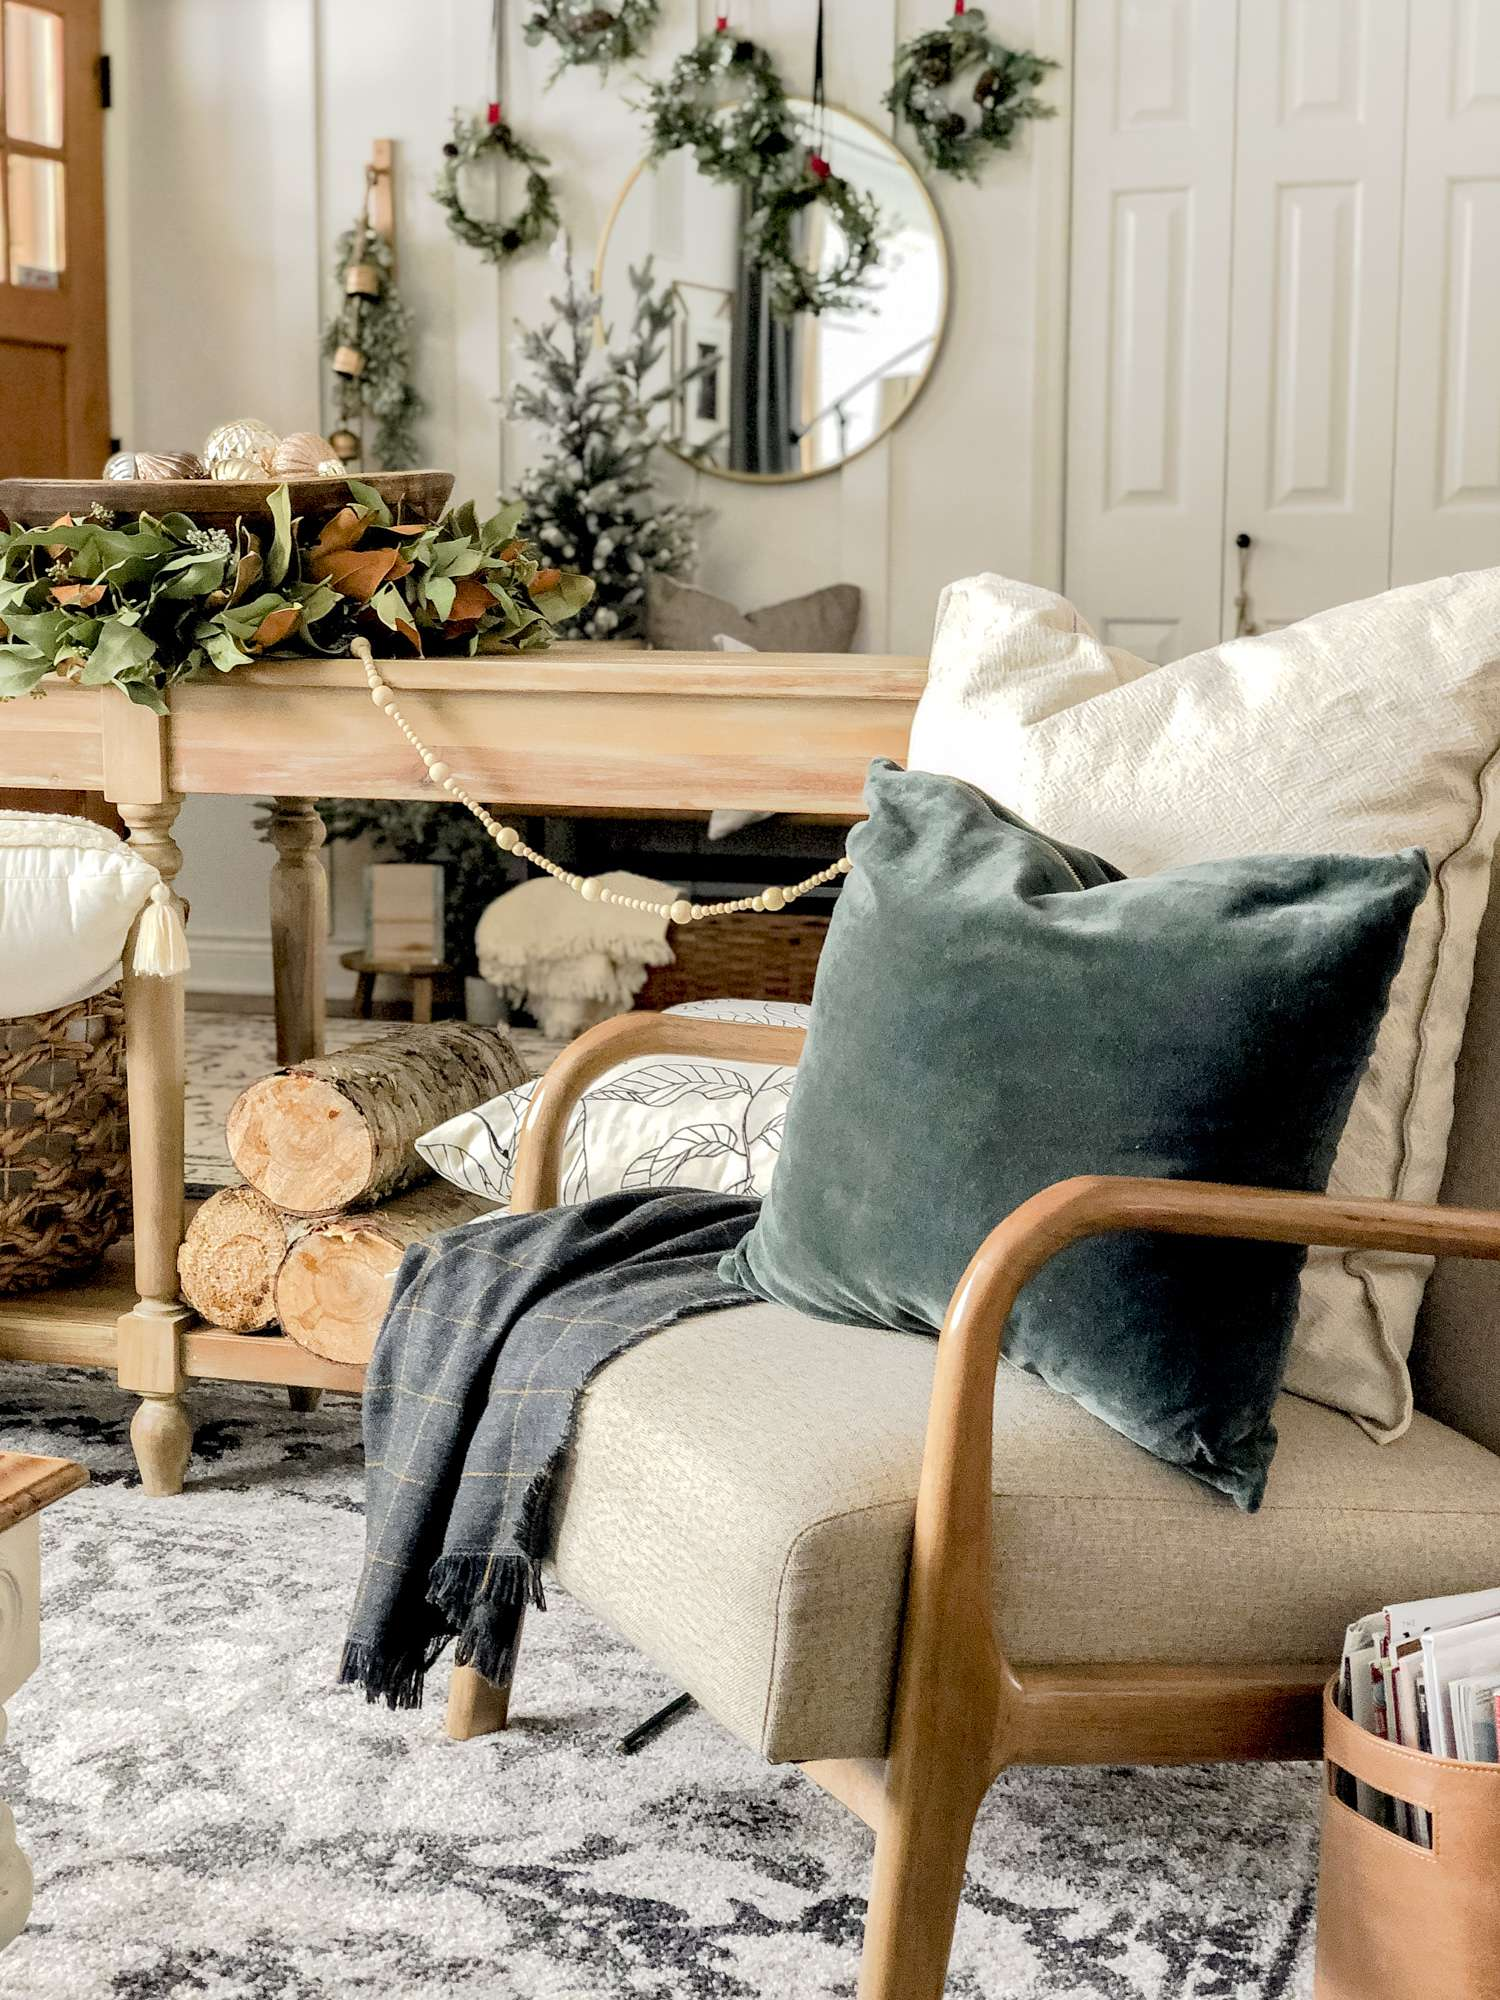 Simple cozy Christmas decor ideas.